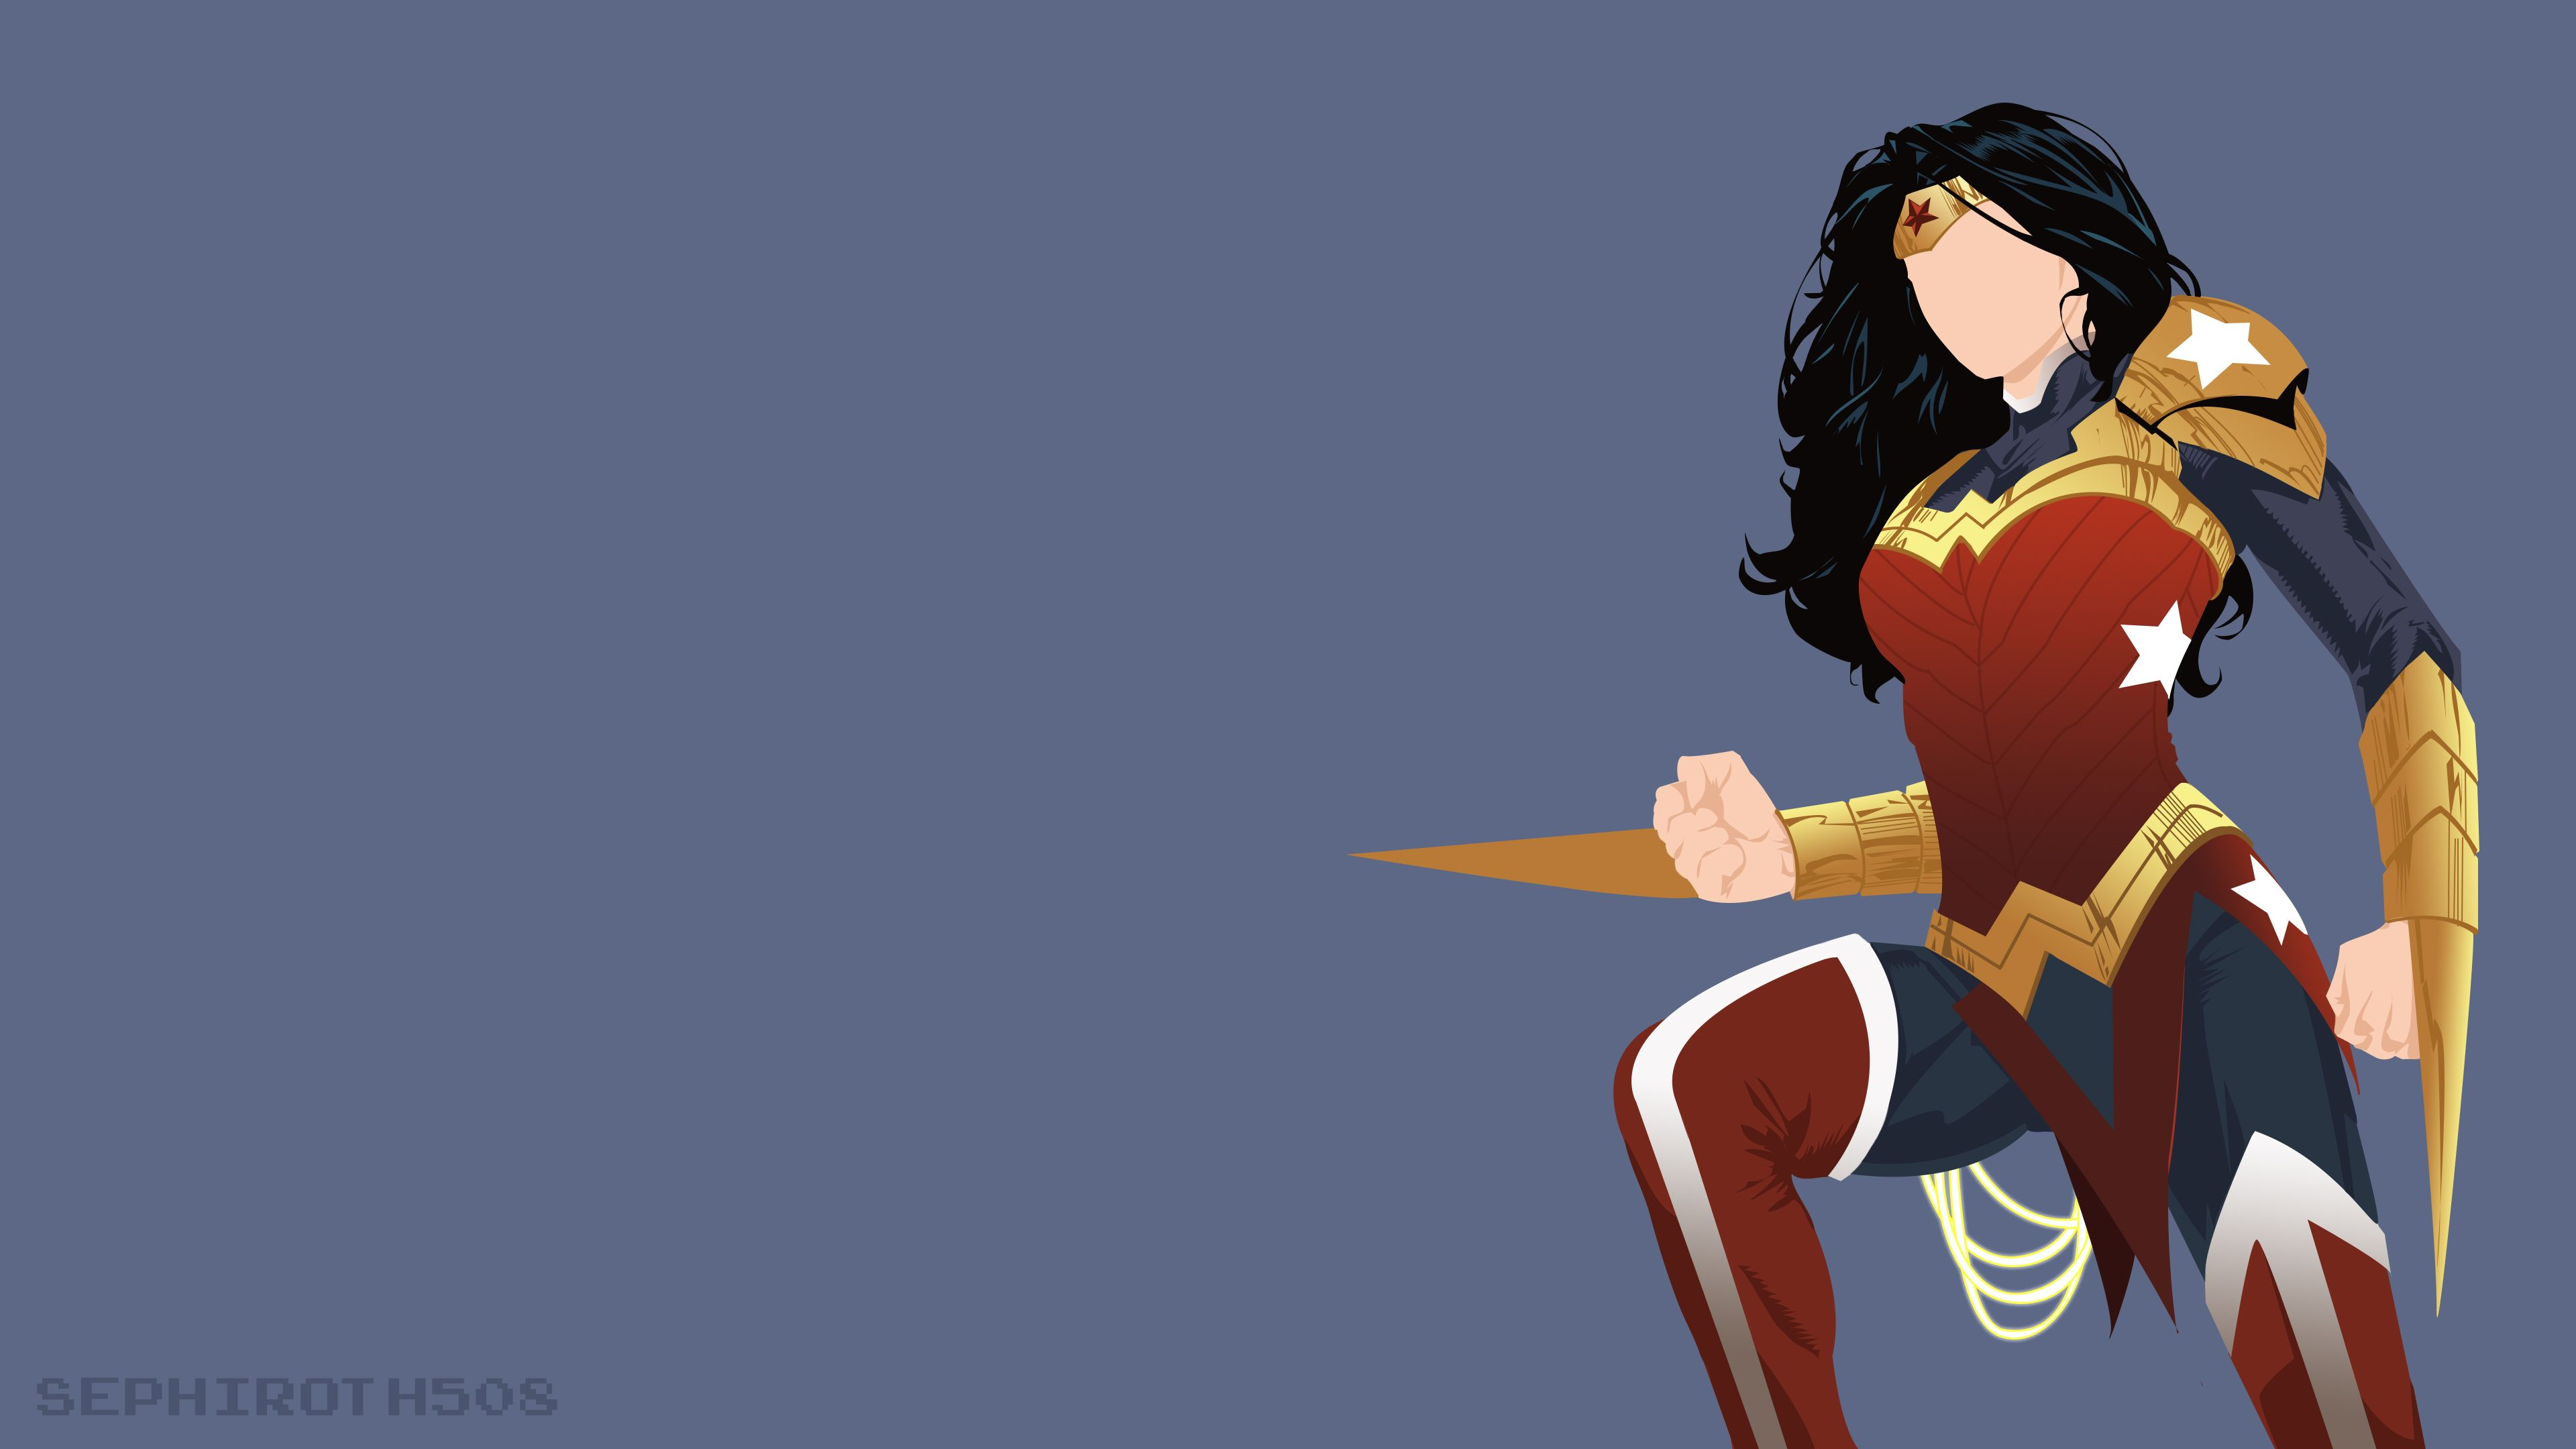 Wonder Woman Minimalist Wonder Woman Wallpapers Hd Wallpapers Deviantart Wallpapers Artwork Wall Pikachu Wallpaper Best Wallpaper Hd Background Hd Wallpaper